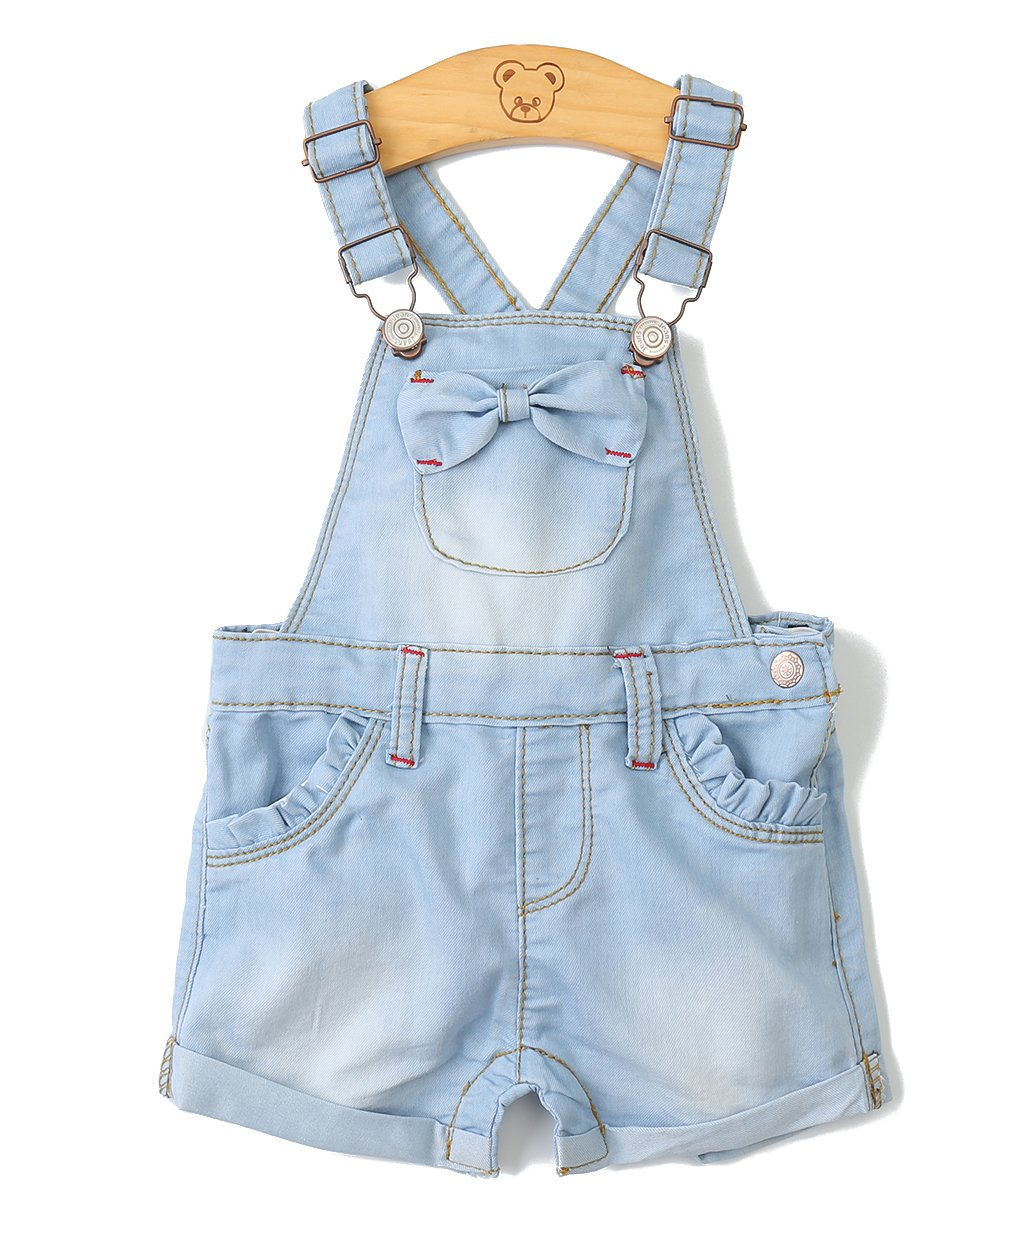 Kidscool Baby Girls Big Bibs Light Blue Summer Bowknot Jeans Shortalls,Light Blue,2-3 Years